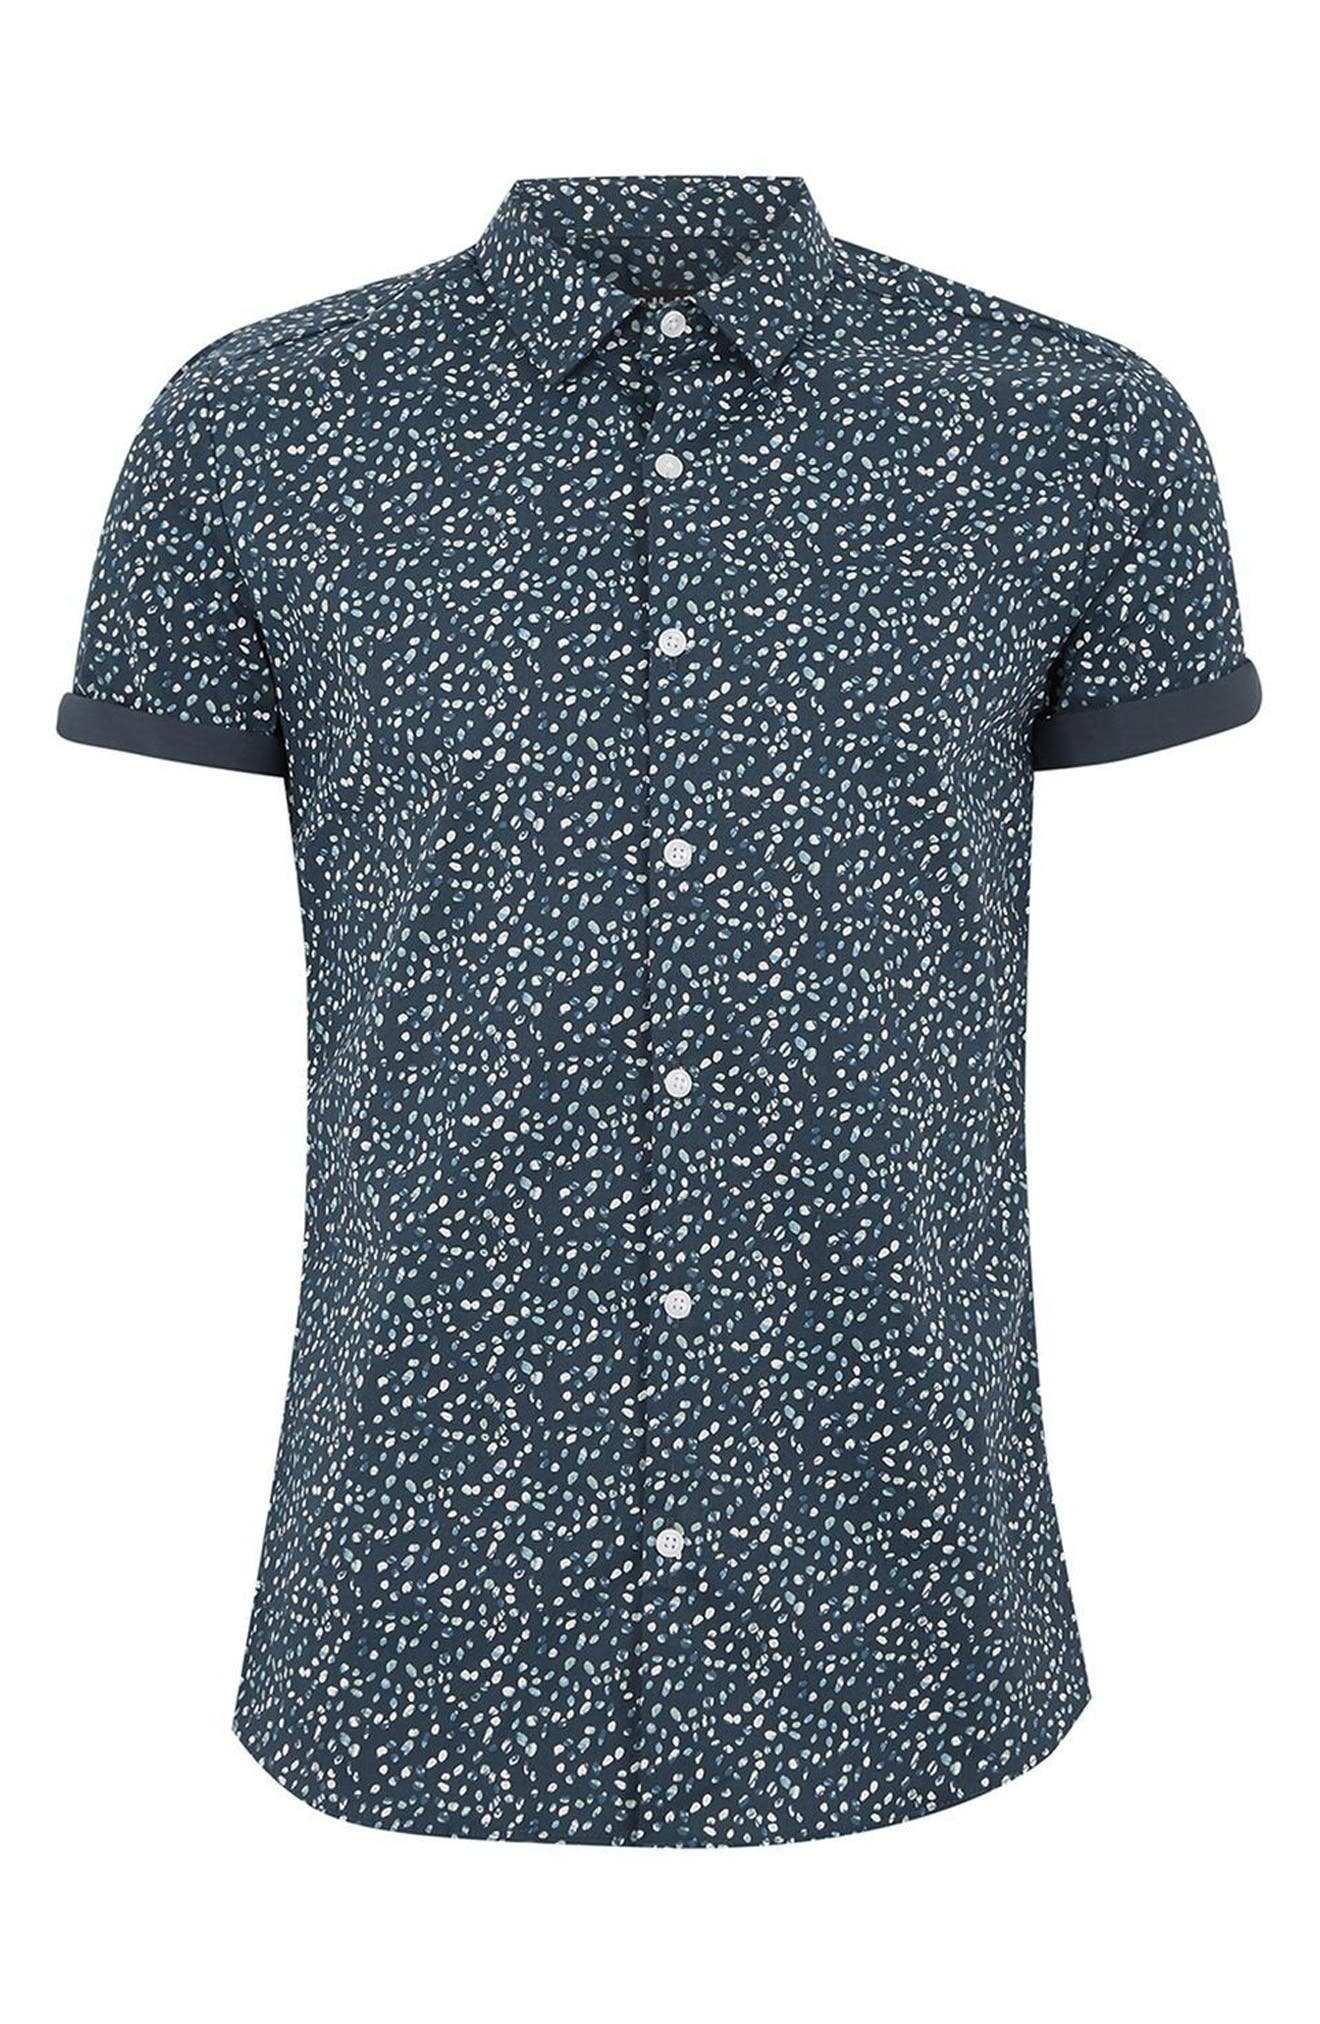 Muscle Fit Marble Print Shirt,                             Alternate thumbnail 4, color,                             401